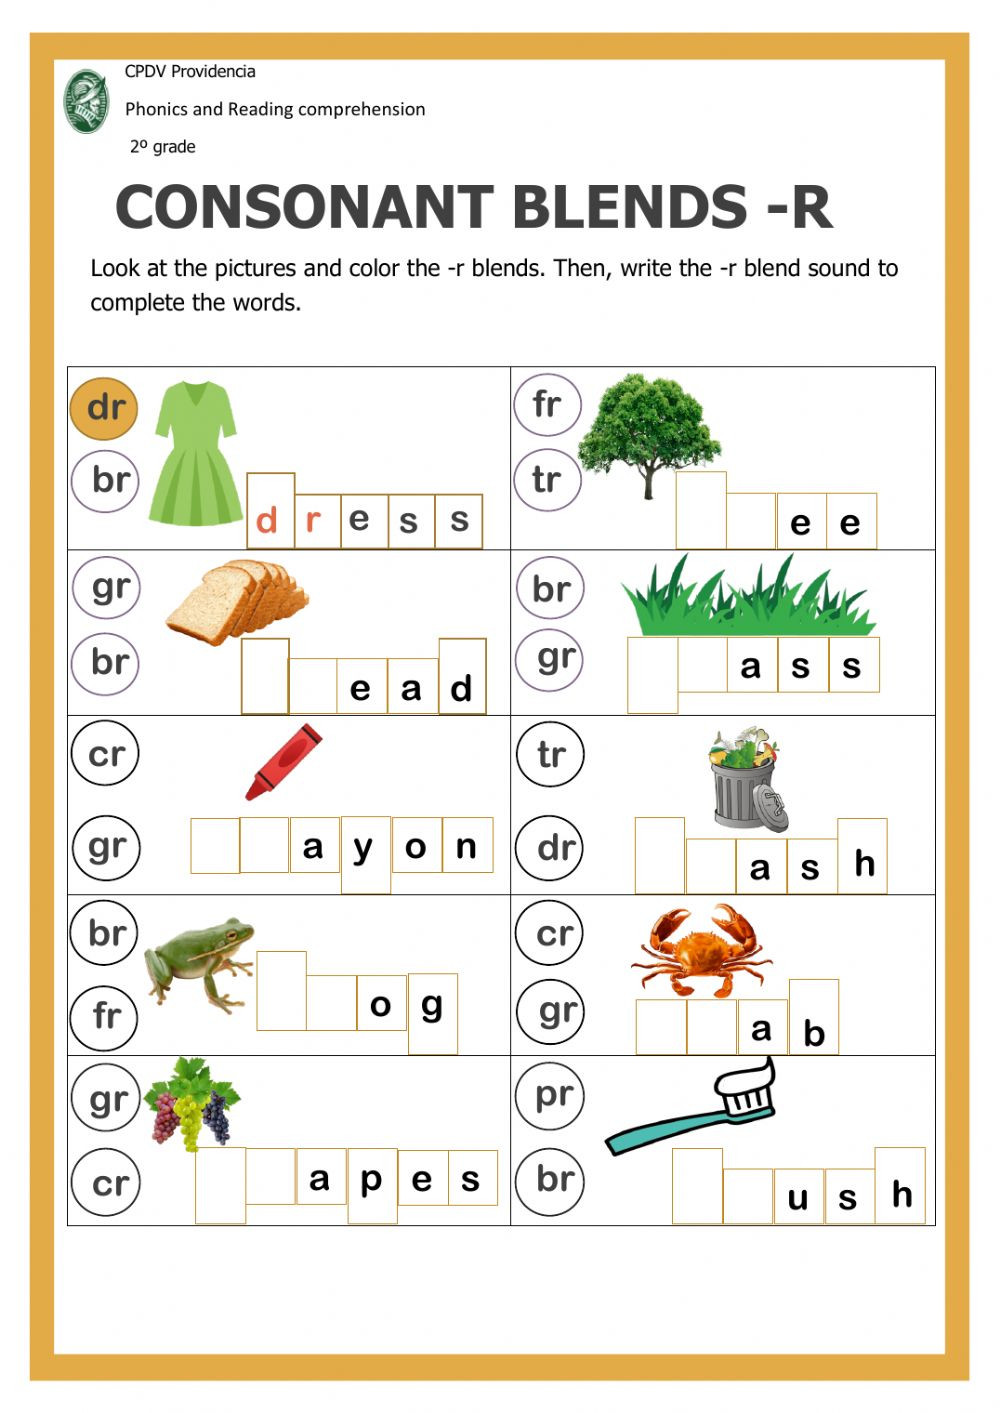 Consonant Blends Worksheets 3rd Grade Consonant Blends with R Interactive Worksheet